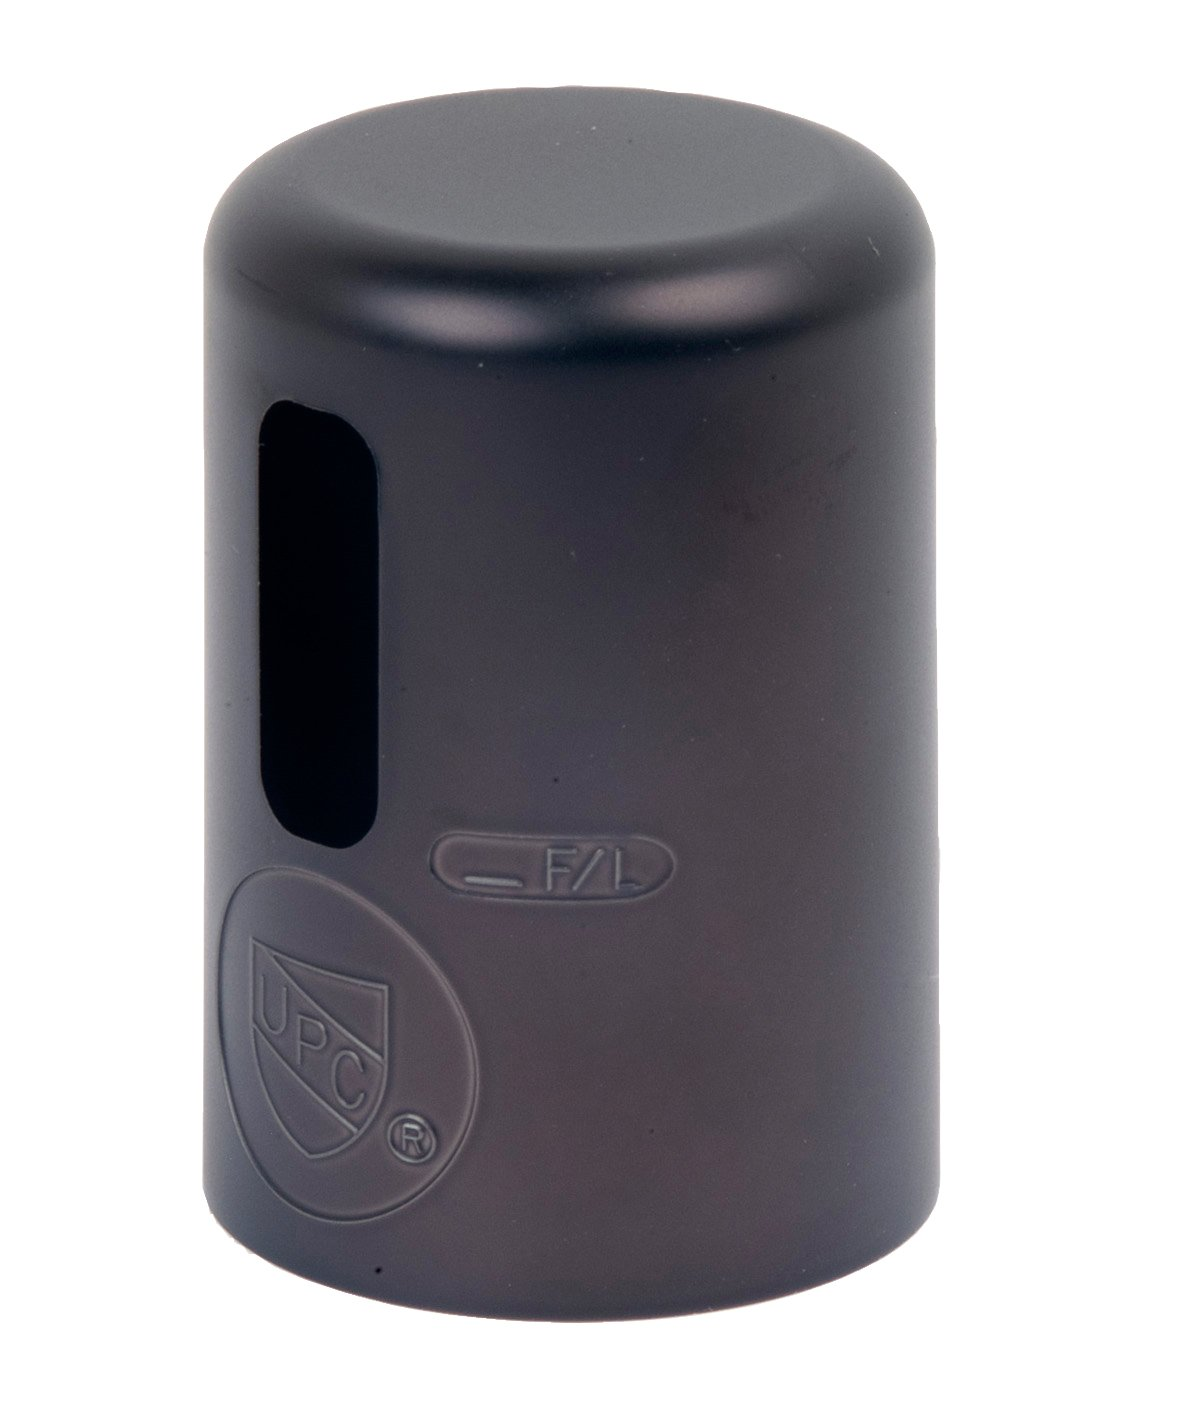 BrassCraft Dishwasher Air Gap Cap, Oil Rubbed Bronze